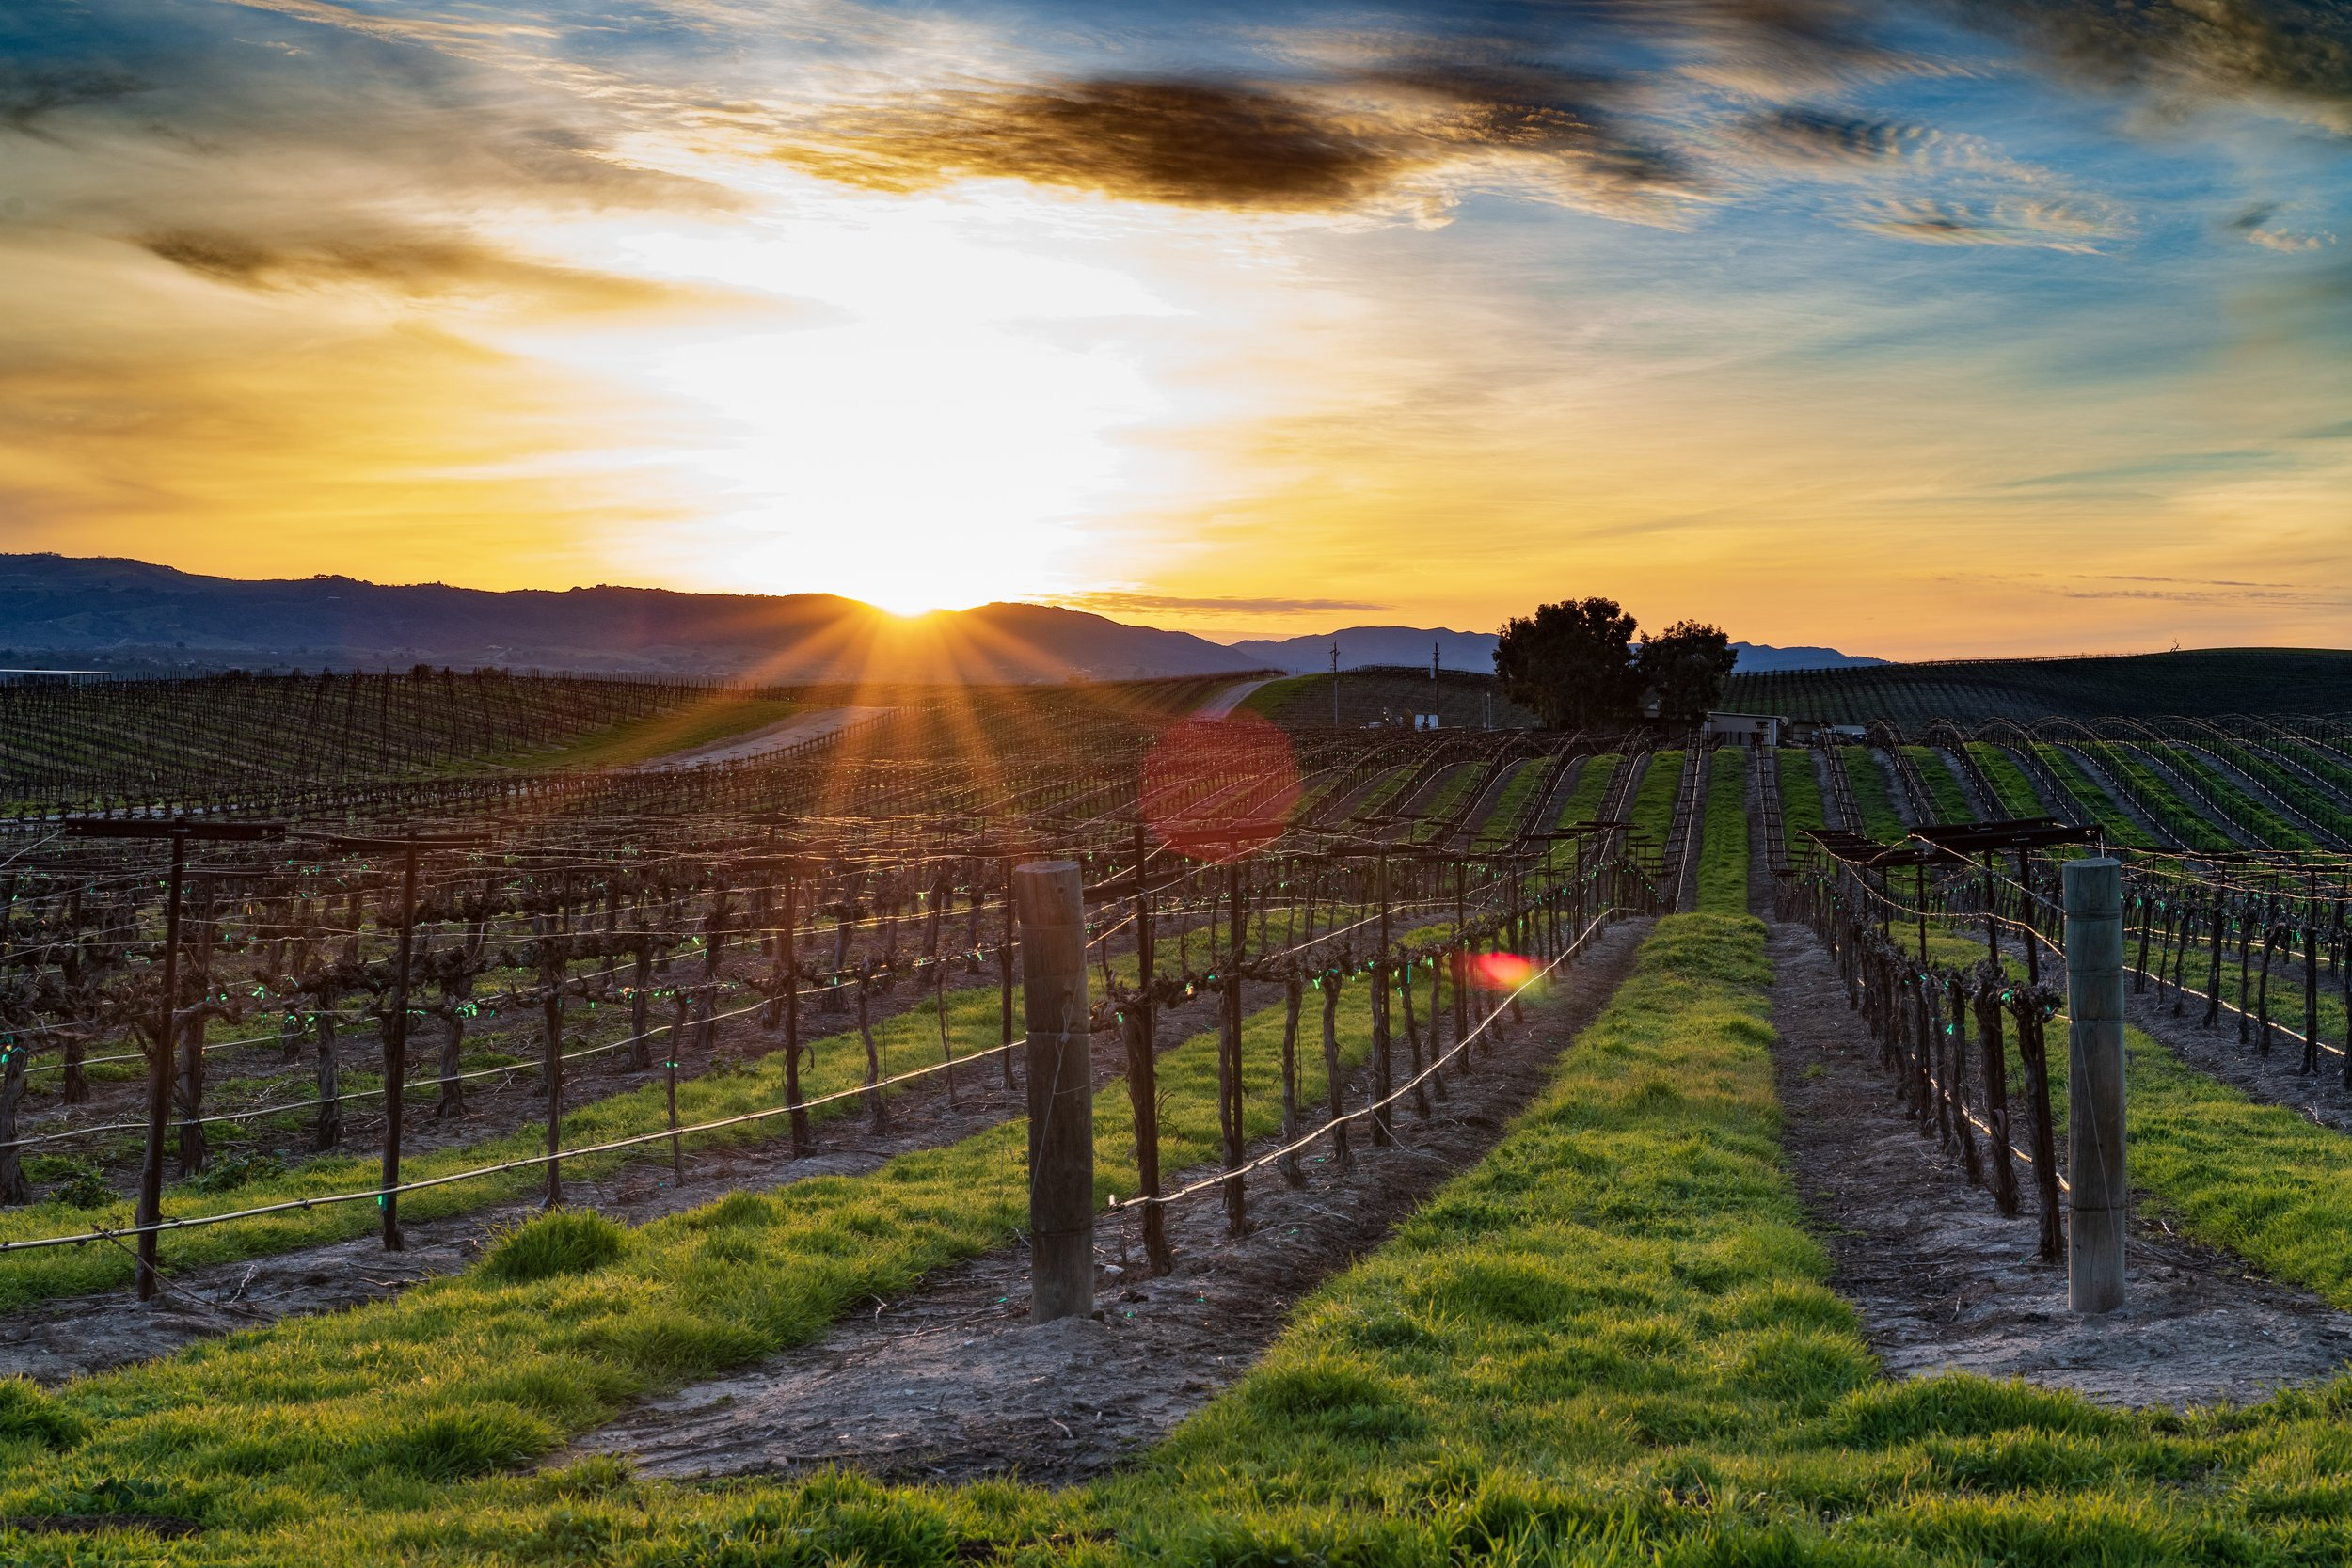 Imagine the beauty of a Napa Valley type setting, but with cannabis plants instead of grape vines